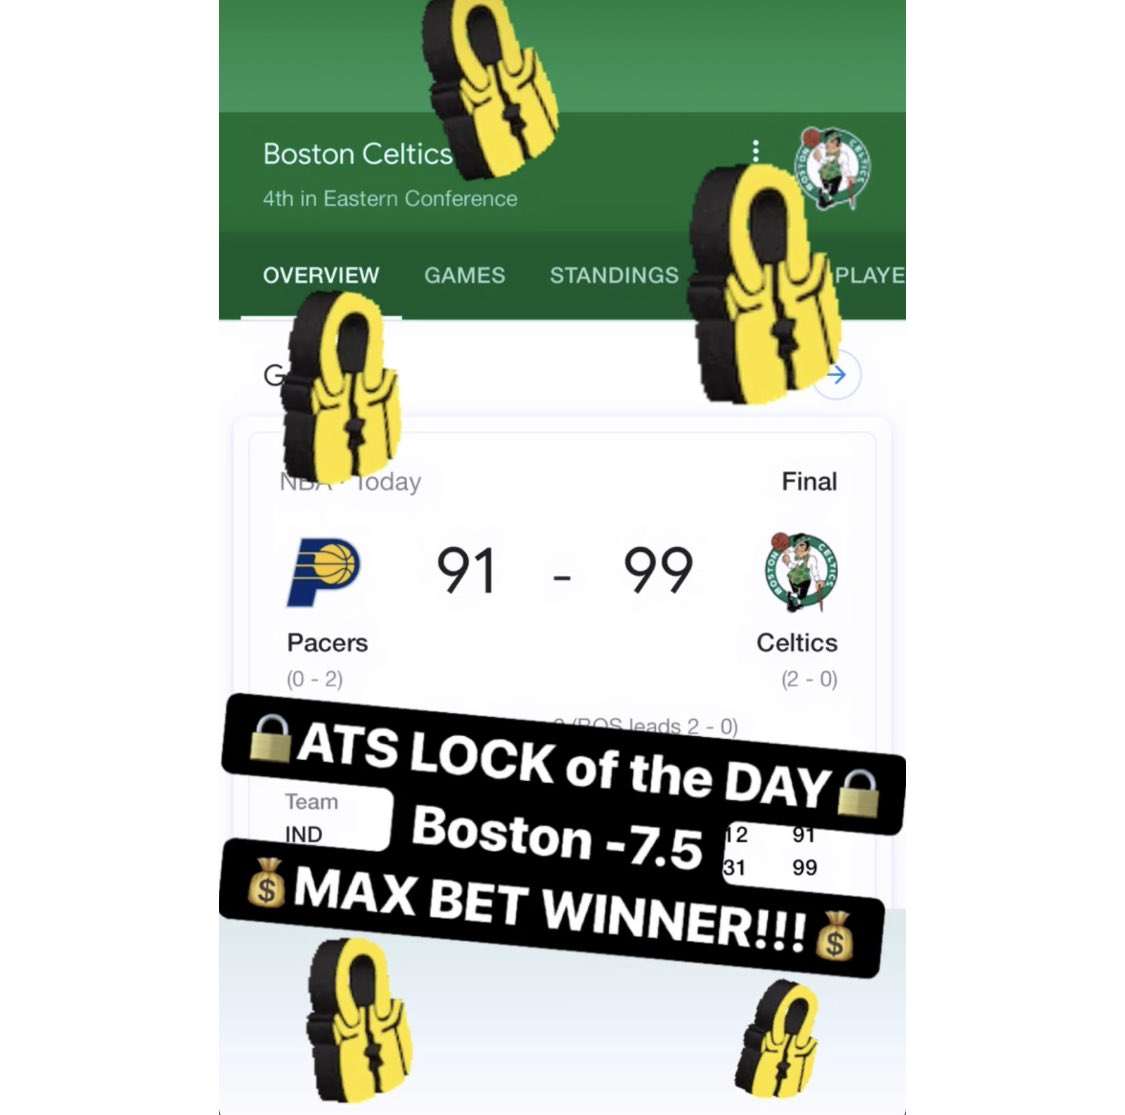 🚨Our ATS🔒of the DAY is a MAX BET WINNER!!🚨💰2-1-1 so far tonight!!💰🔥MESSAGE us NOW for the $10 Daily Special or the $79 April Special & receive a 🆓 ATS Tee!!🔥326-117-8🔥#handicapper #ATS #WeWinWhenYOUWIN #sportsbetting #sportsbettingadvice  #ncaabasketball #nba #nhl #mlb